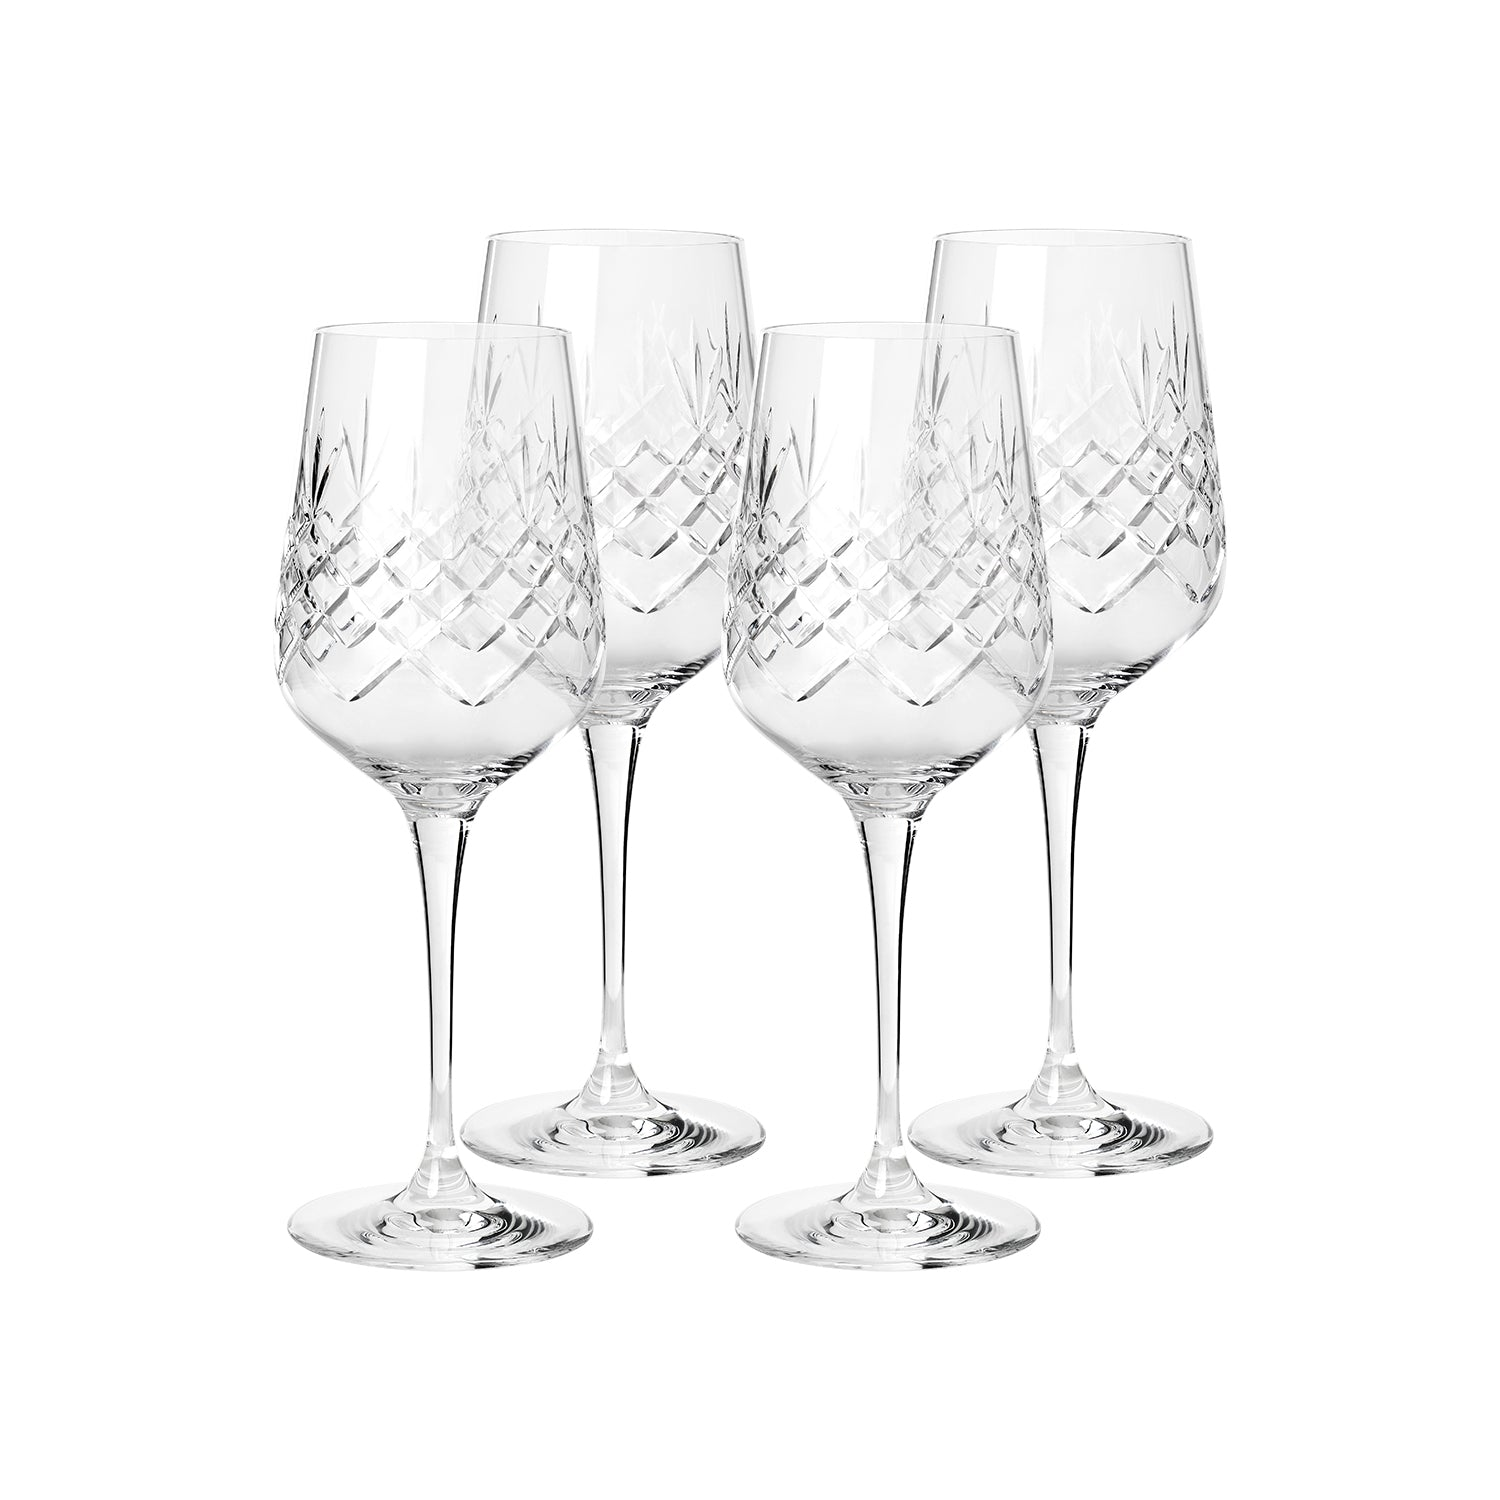 Crispy Madame // White Wine - 4 Pieces